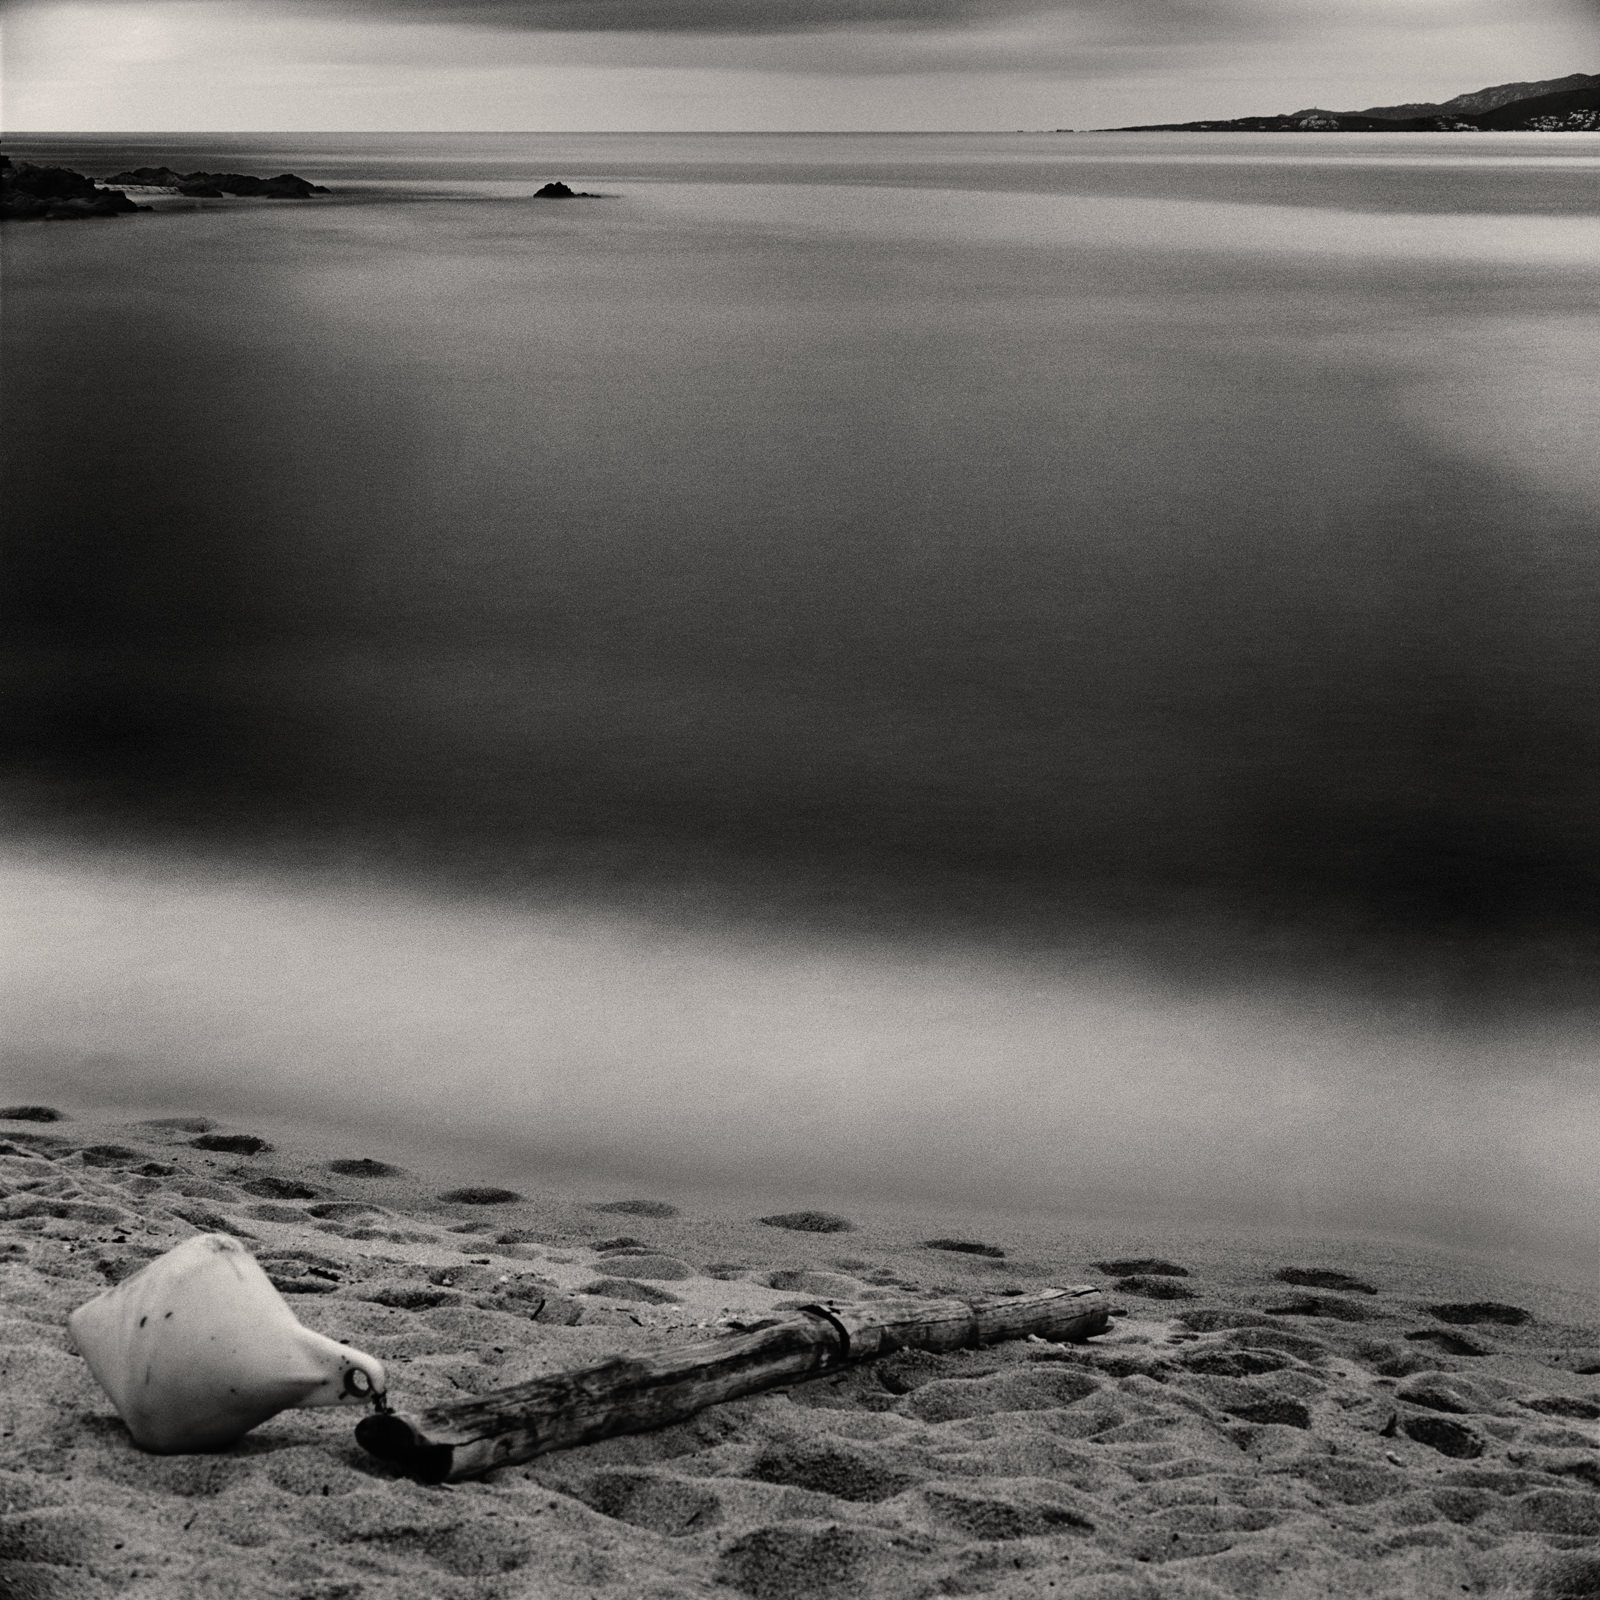 Long exposure waterscape photograph of Mediterranean sea with milky water, buoy and wooden stick on sand beach, made with medium format camera and black-white film, fine art print on paper